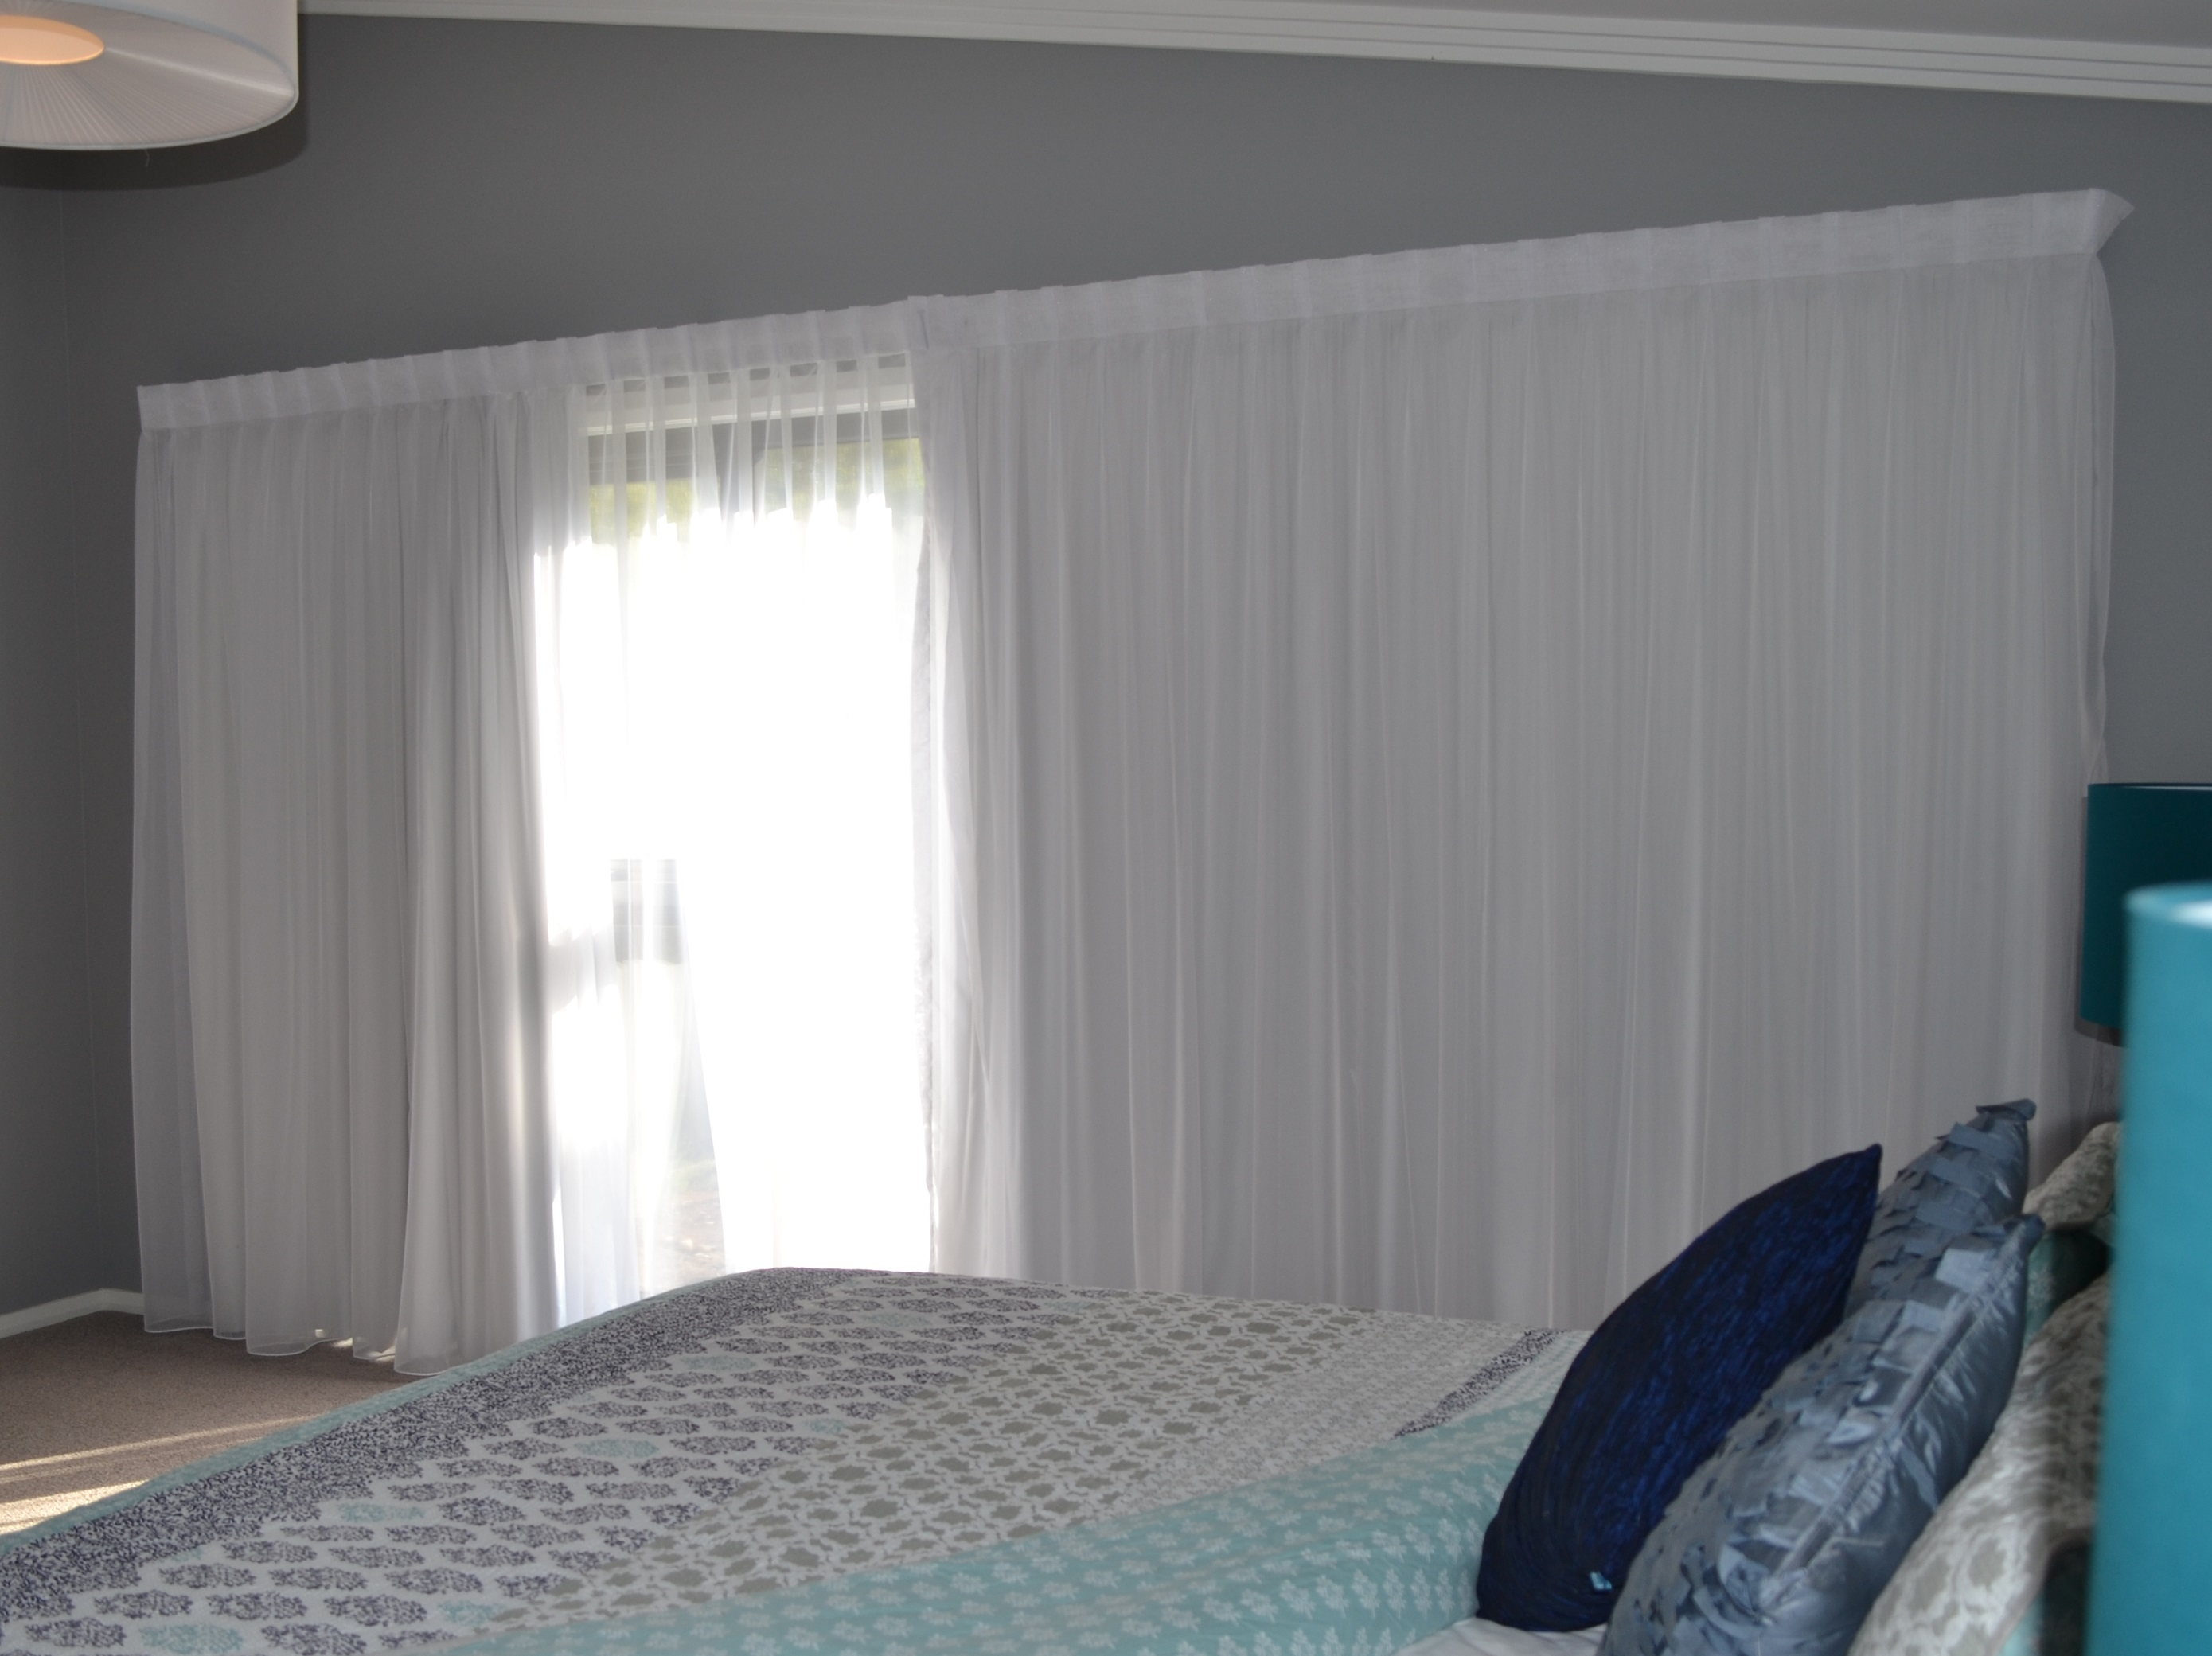 Double Track With A Sheer Curtain At The Front With A Lining At Inside Double Lined Curtains (Image 8 of 15)